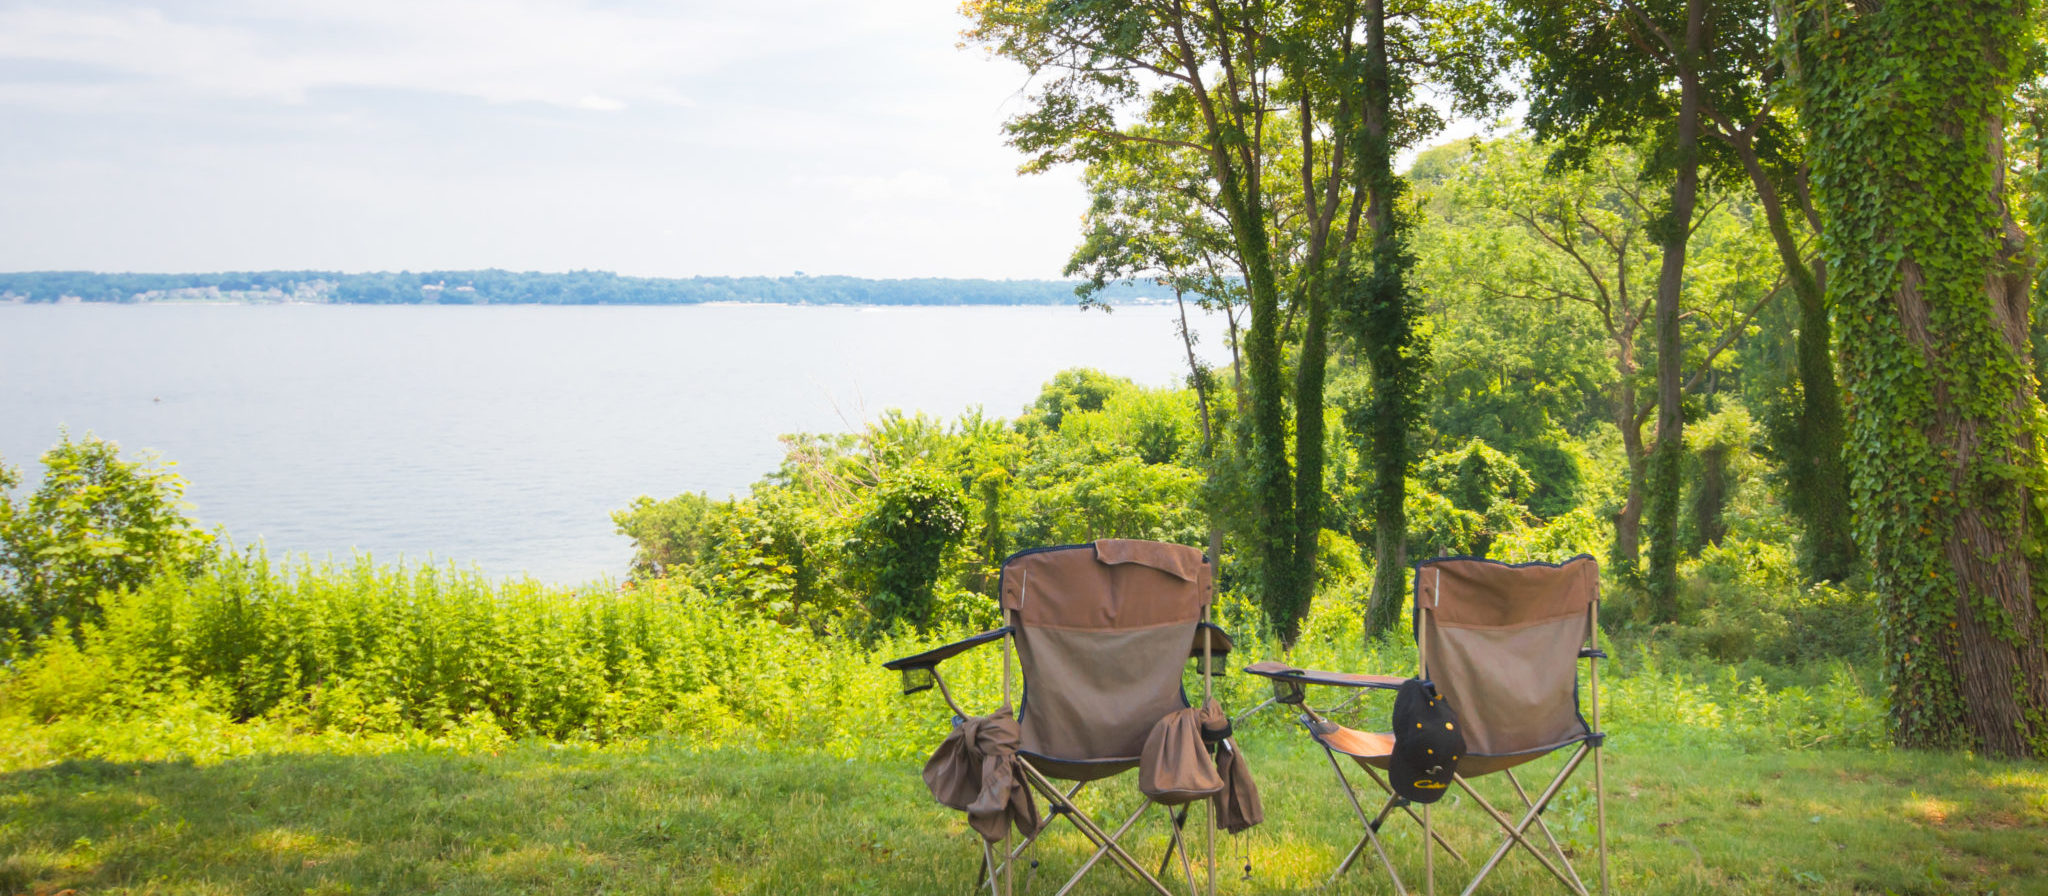 Bring along a camping chair or two to spend some quality time in the great outdoors with a friend or loved one. You will not regret your time.